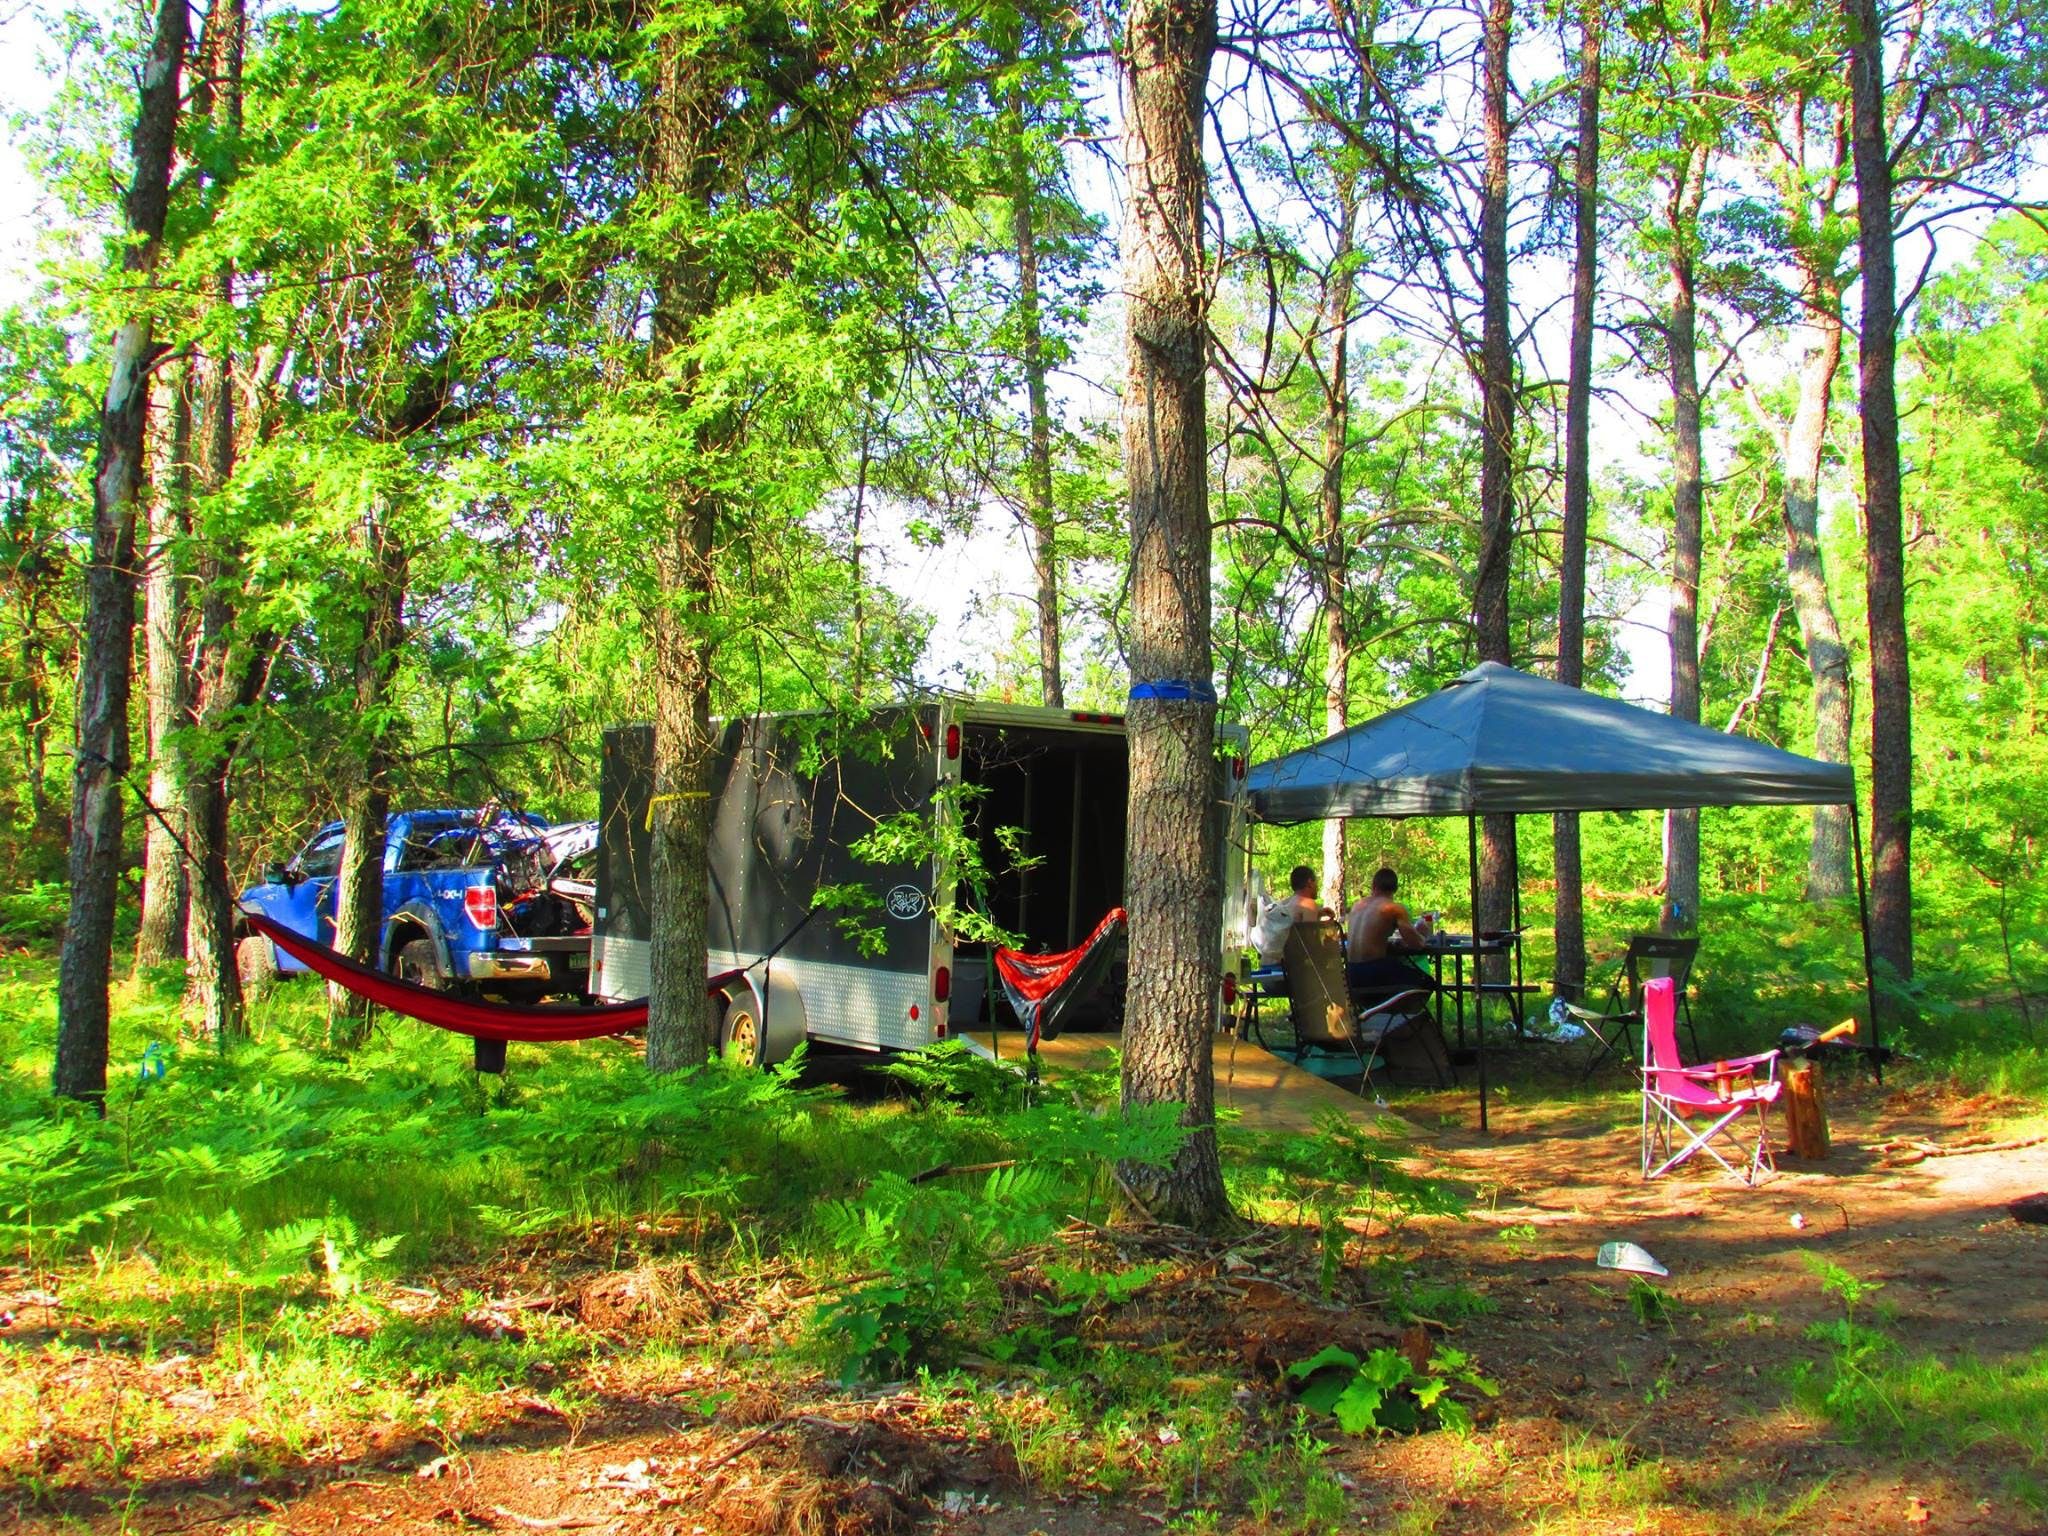 camping at Best Bear Lodge and Campground